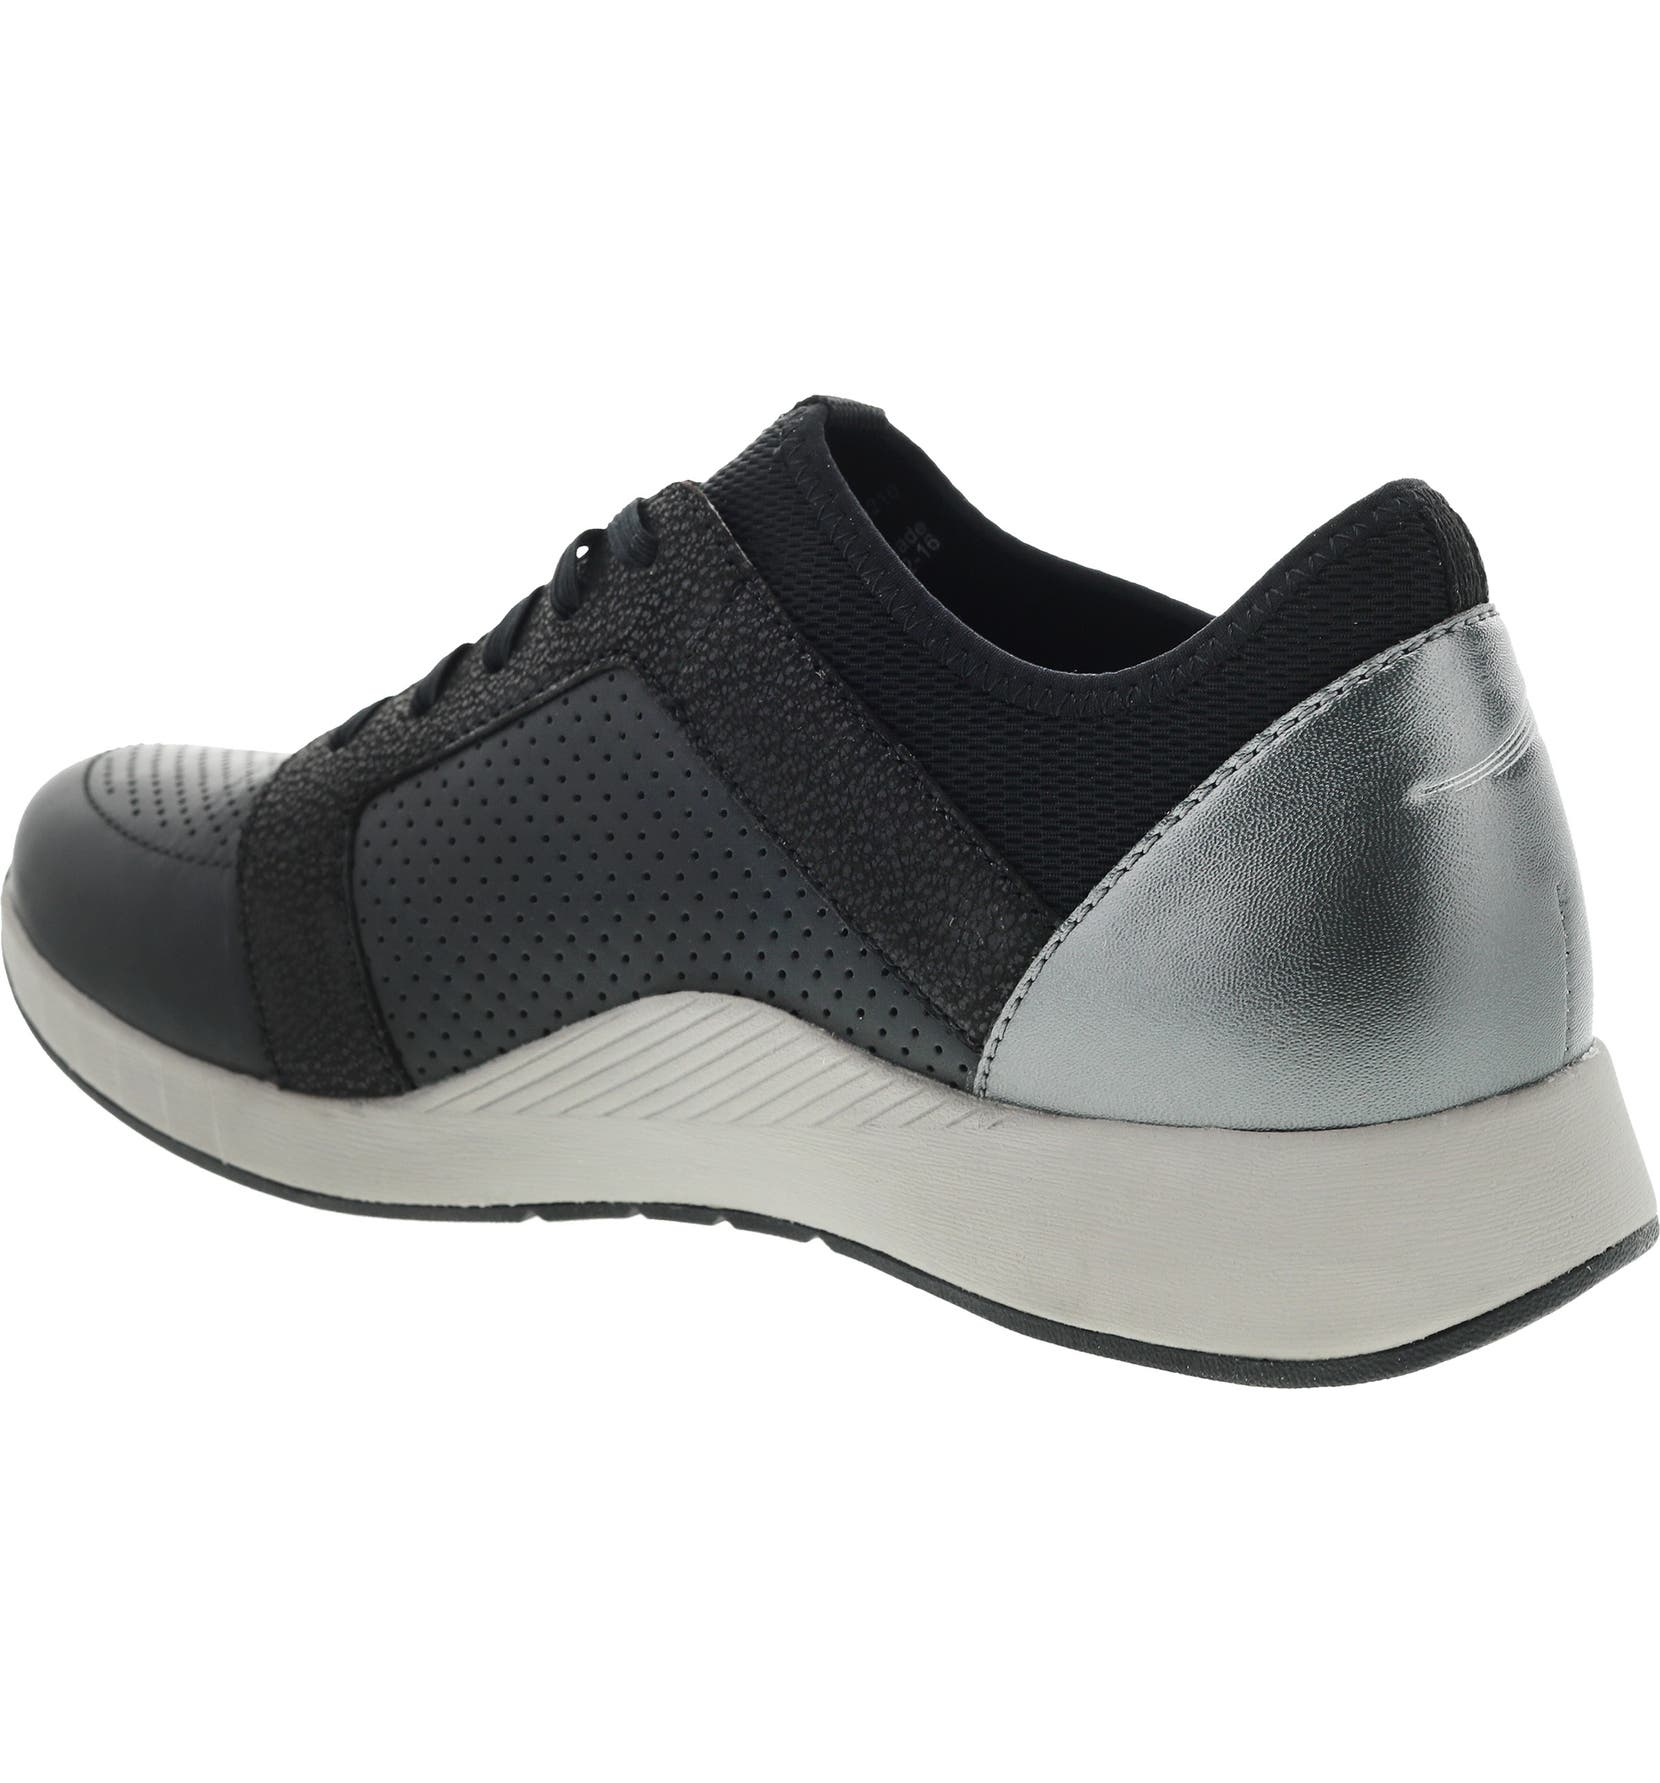 305a139e2445a Cozette Slip-On Sneaker